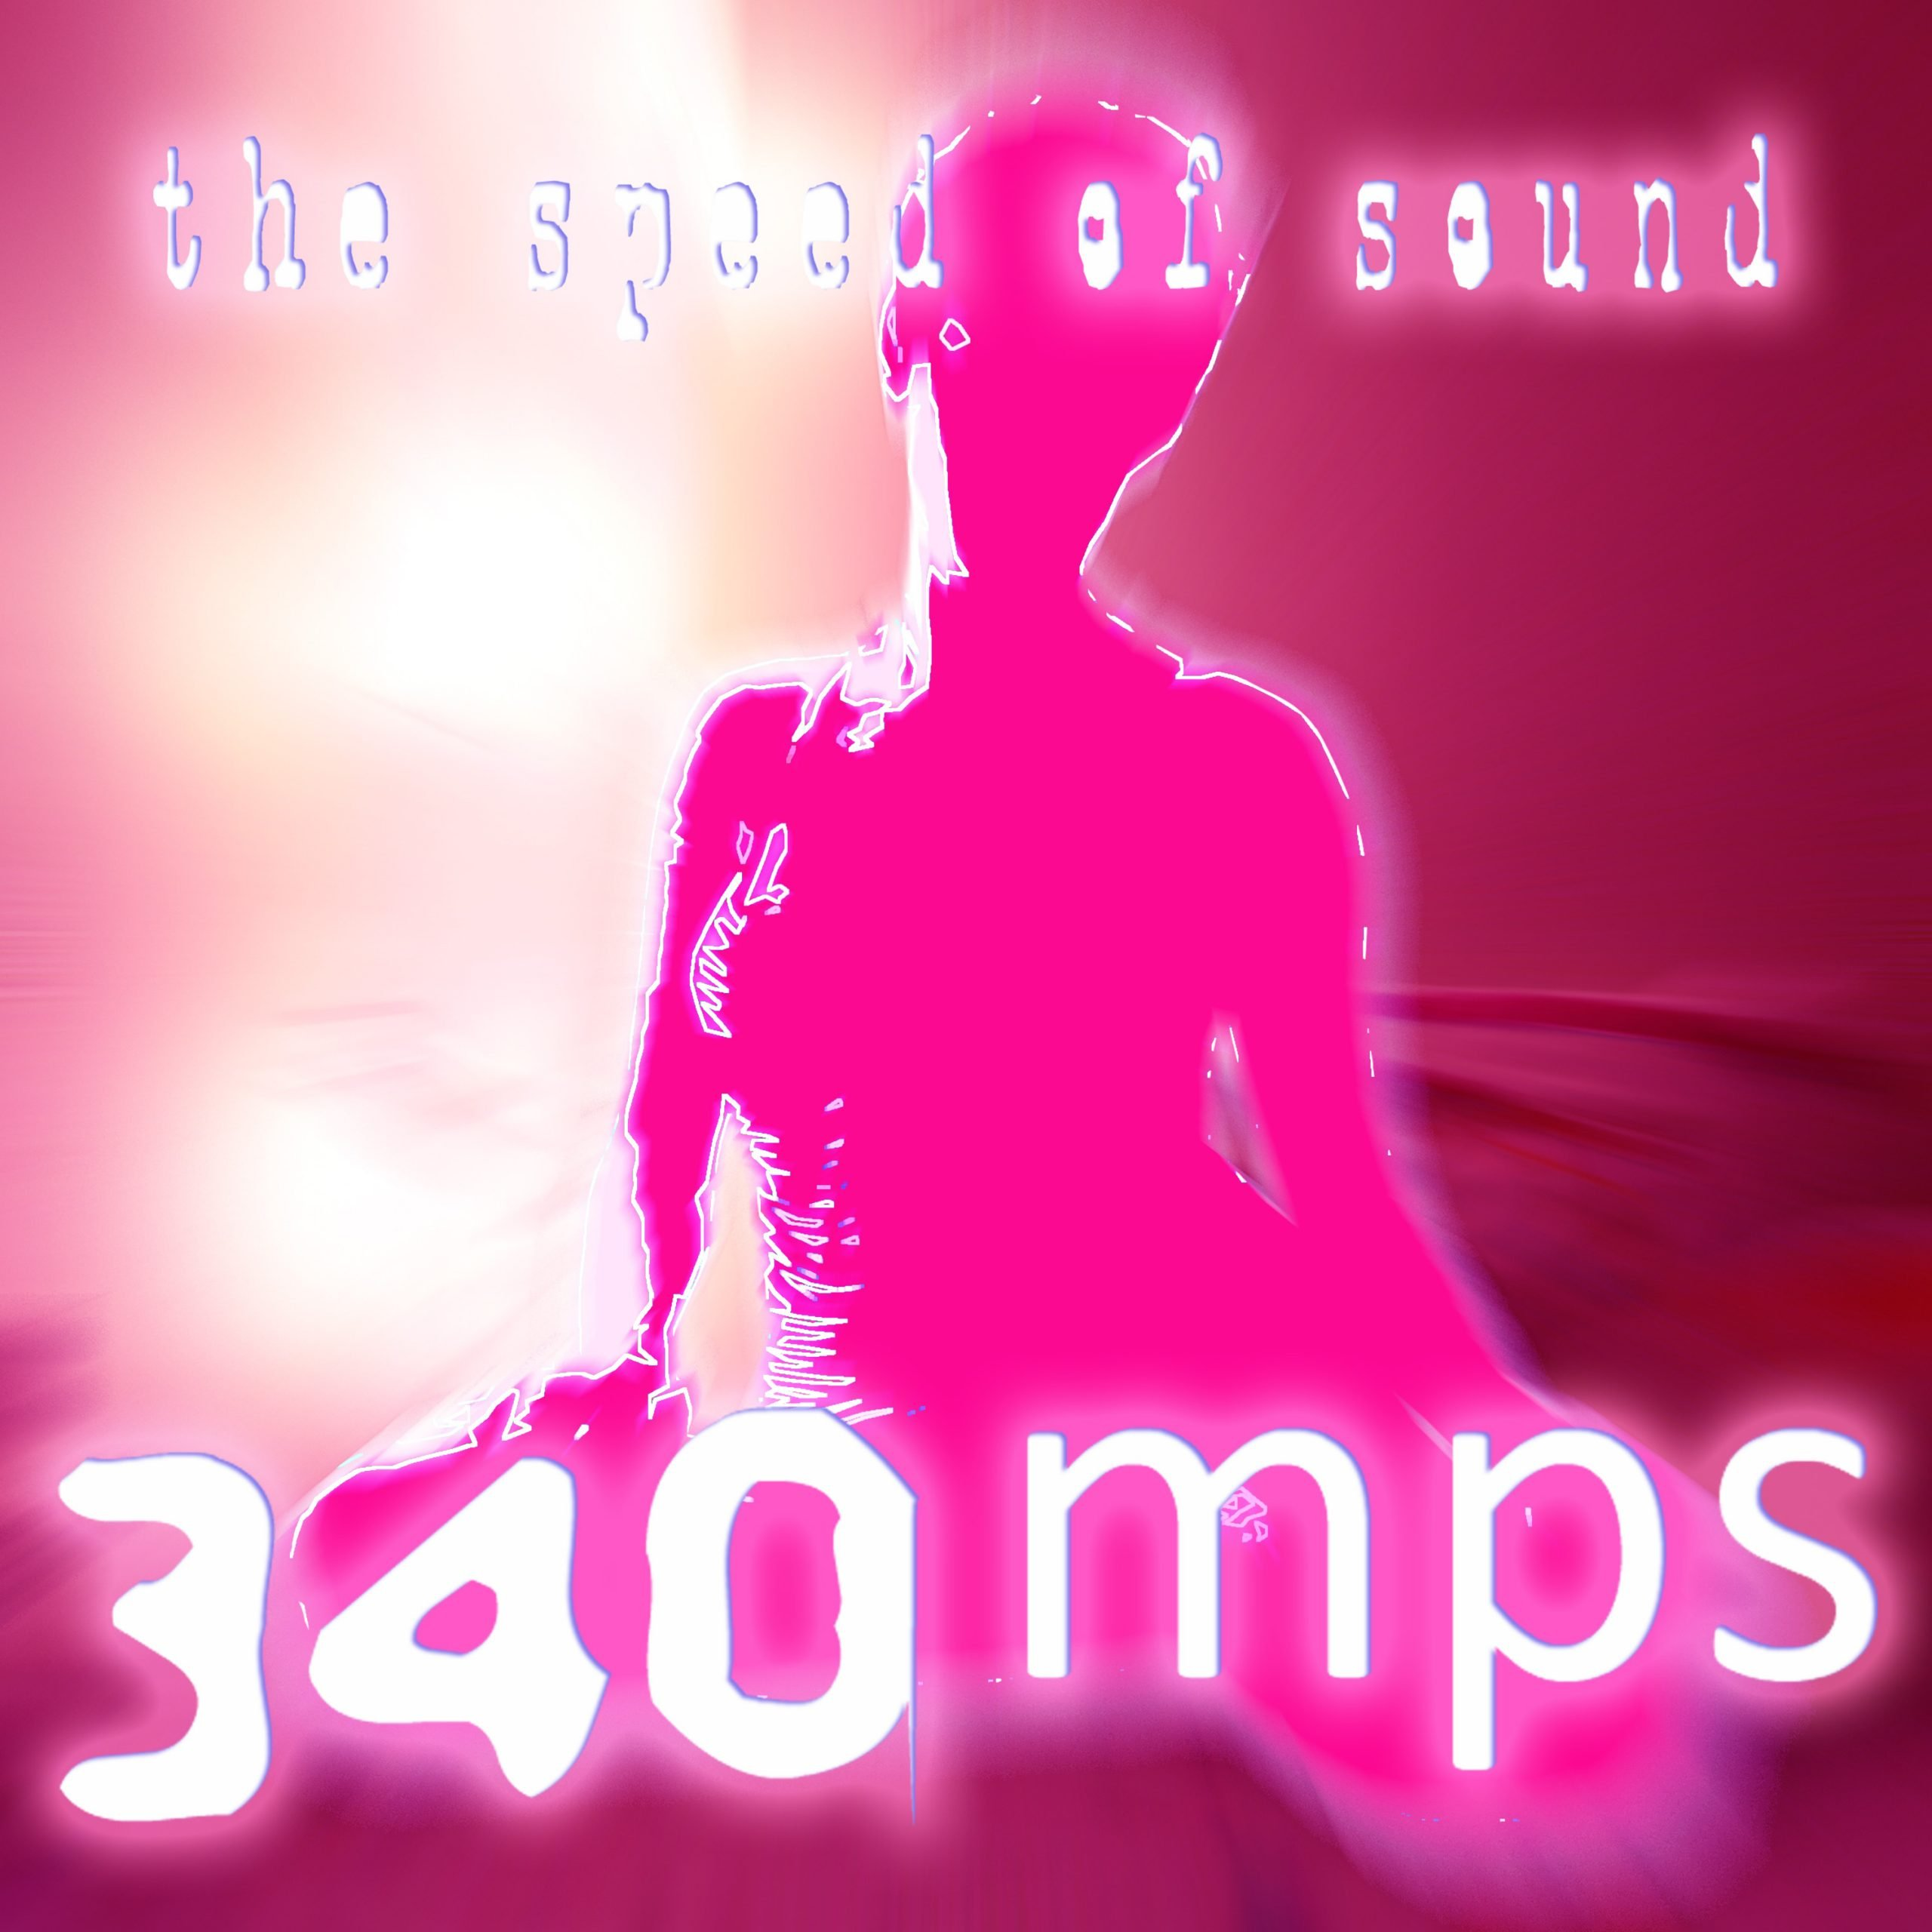 340MPS - The Speed of Sound - Cover